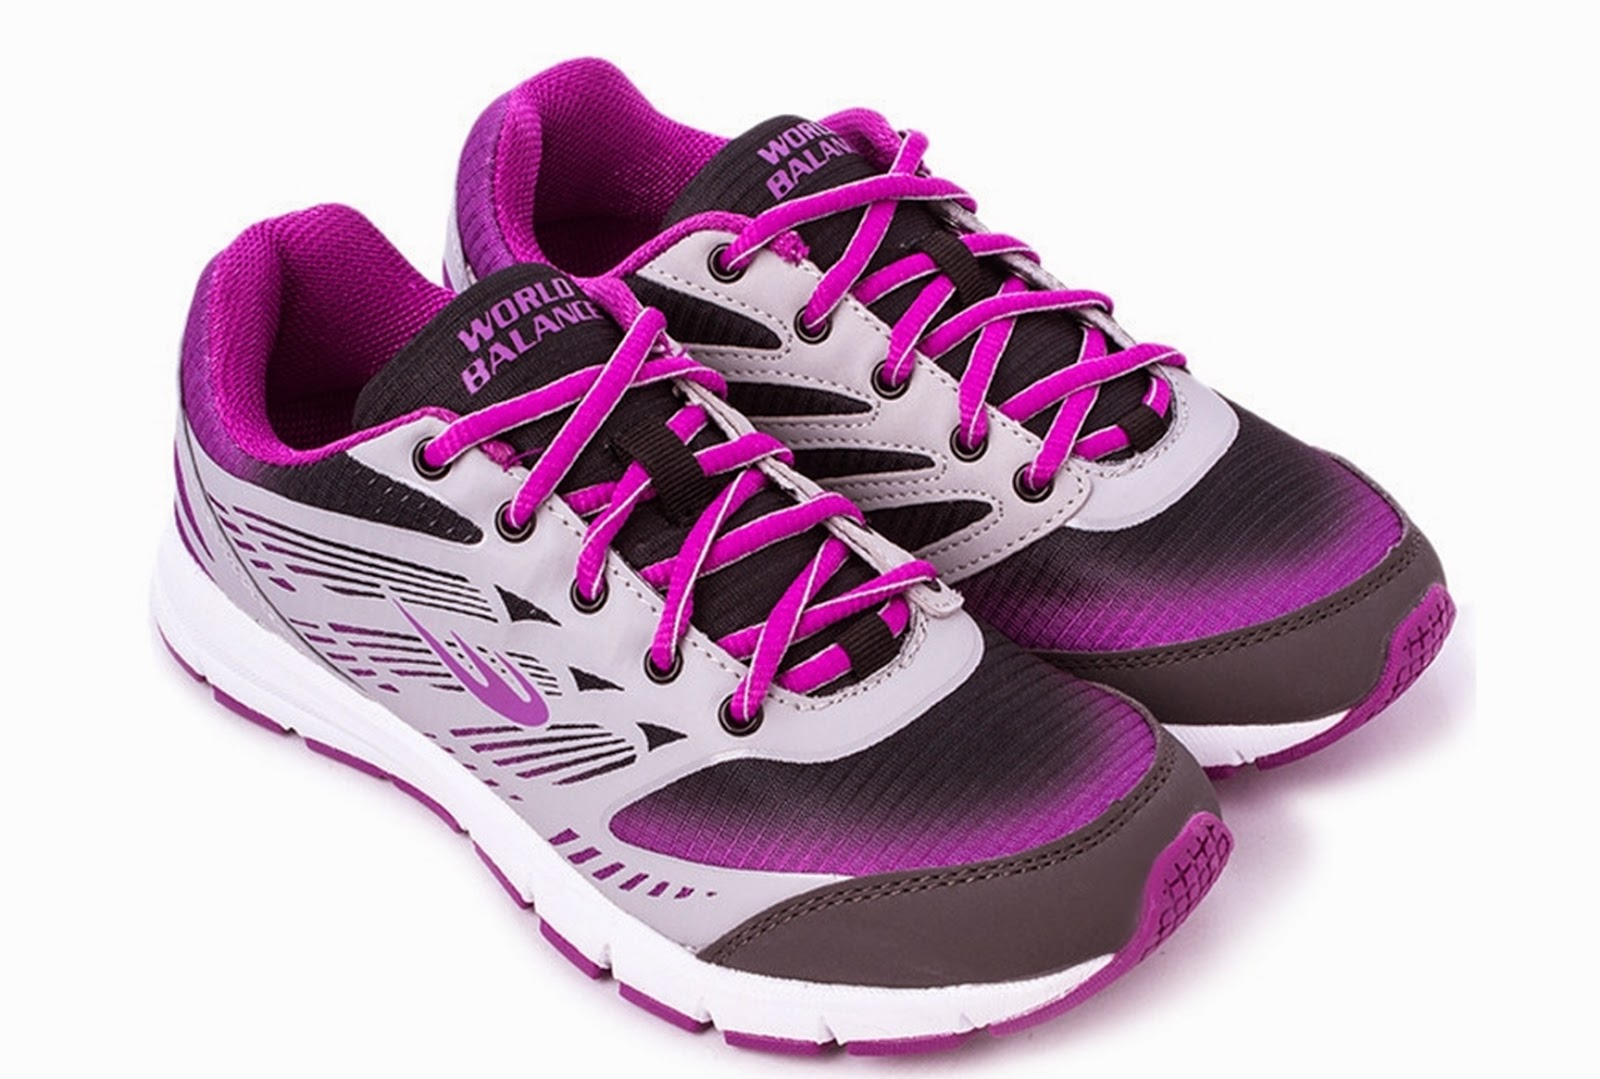 No More Excuses with World Balance Running Shoes